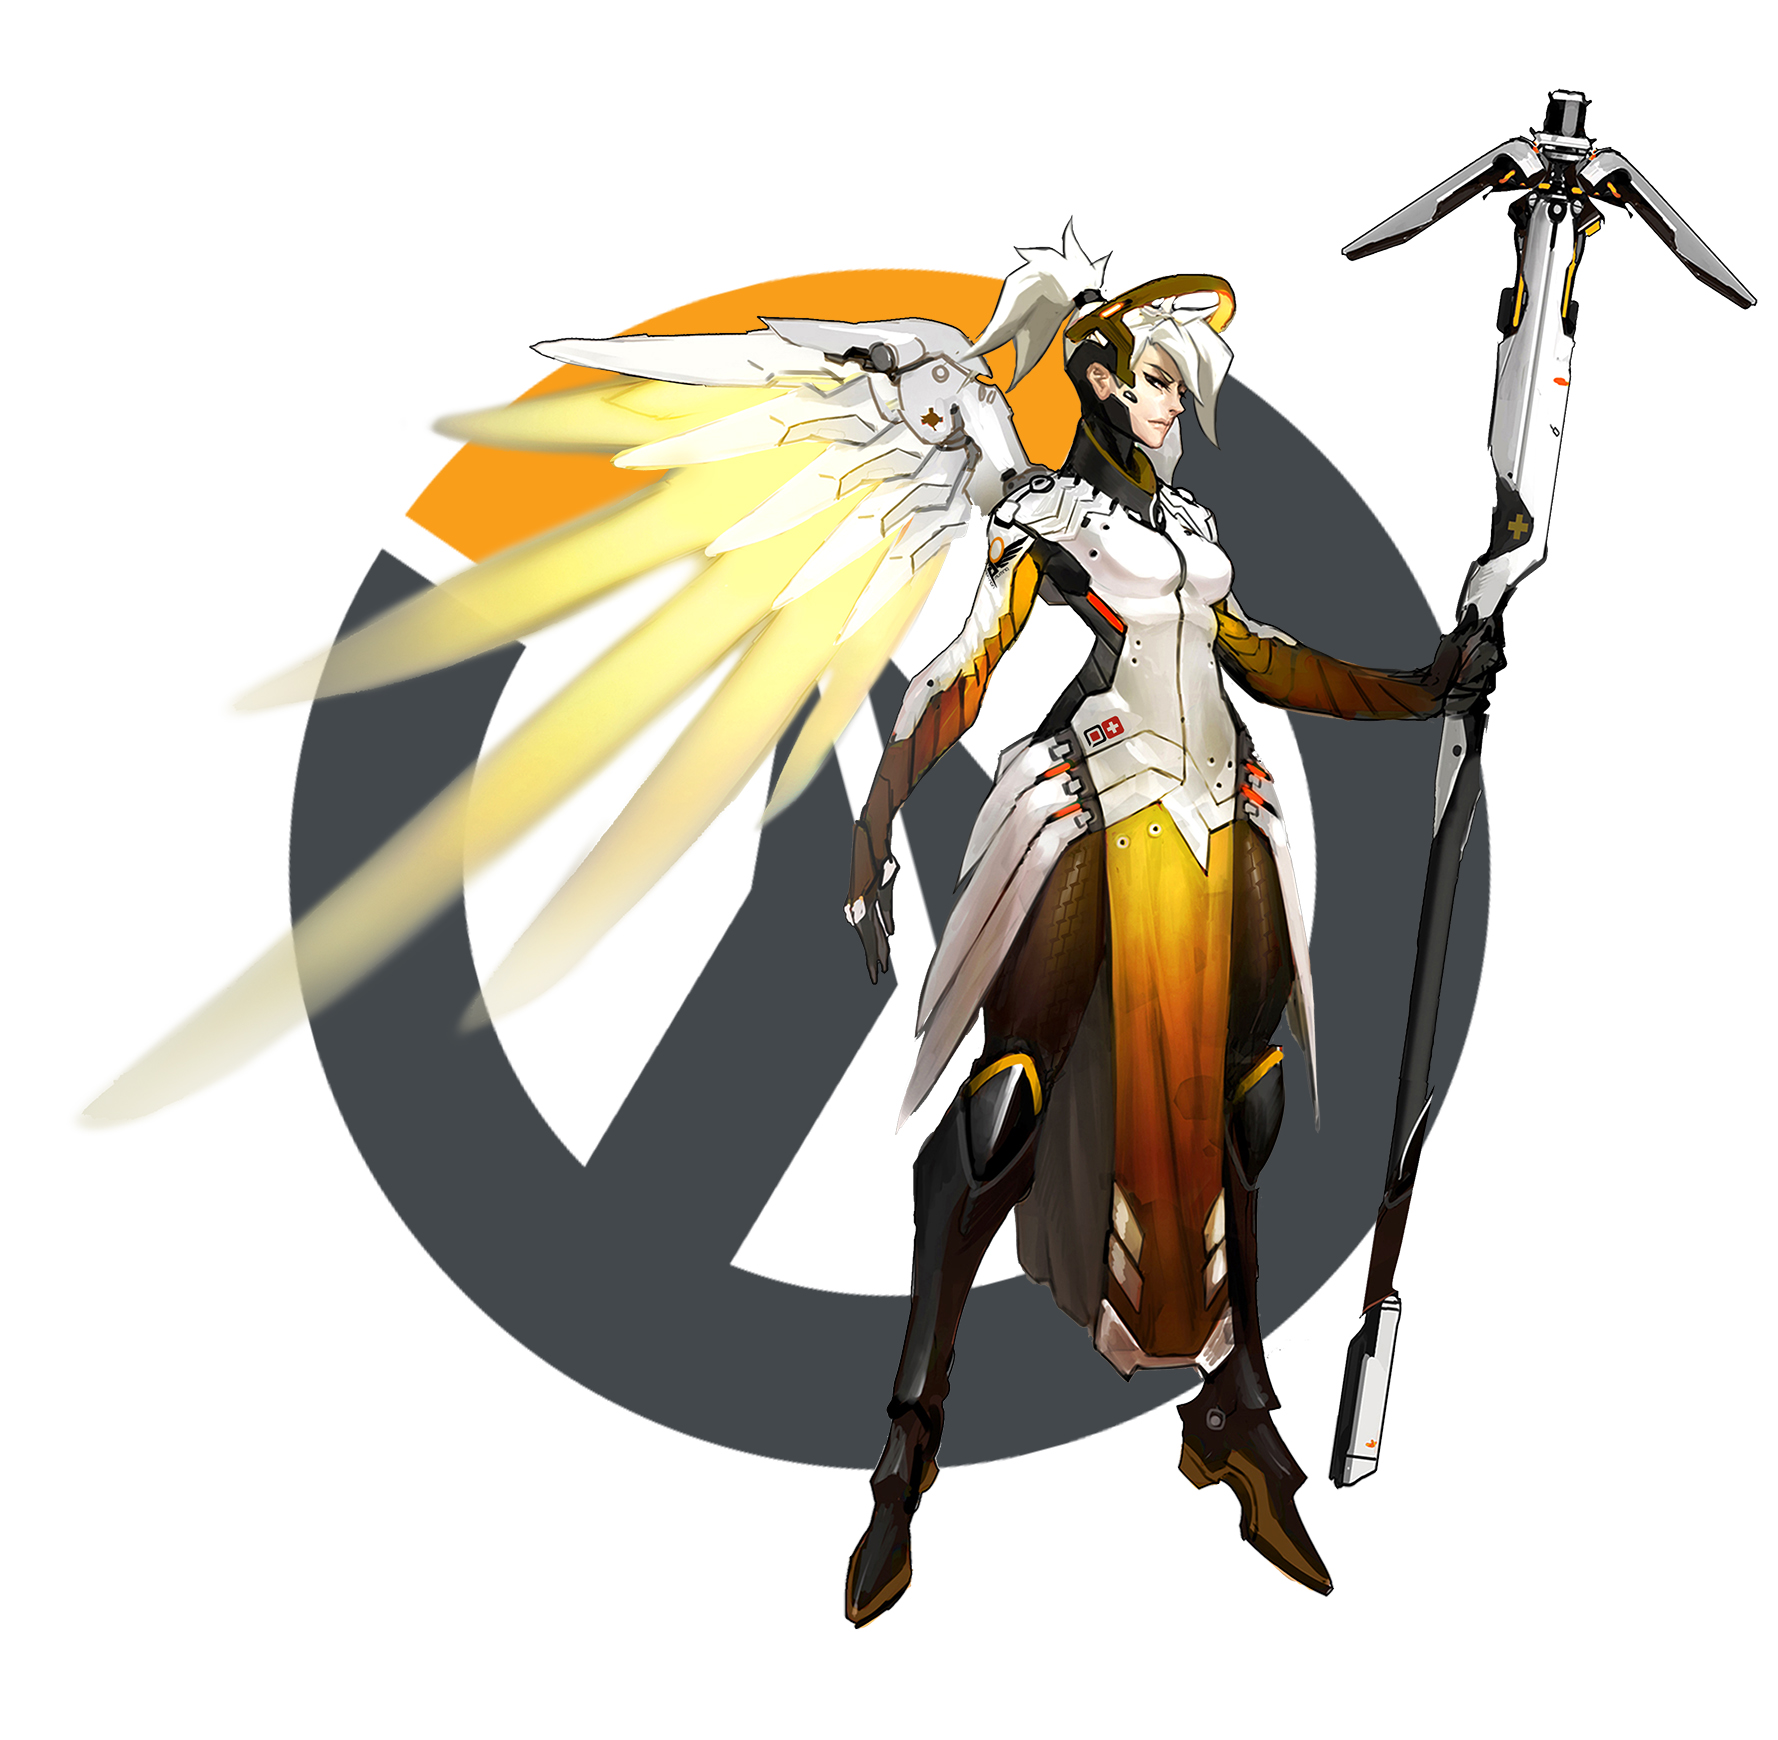 overwatch art style guide